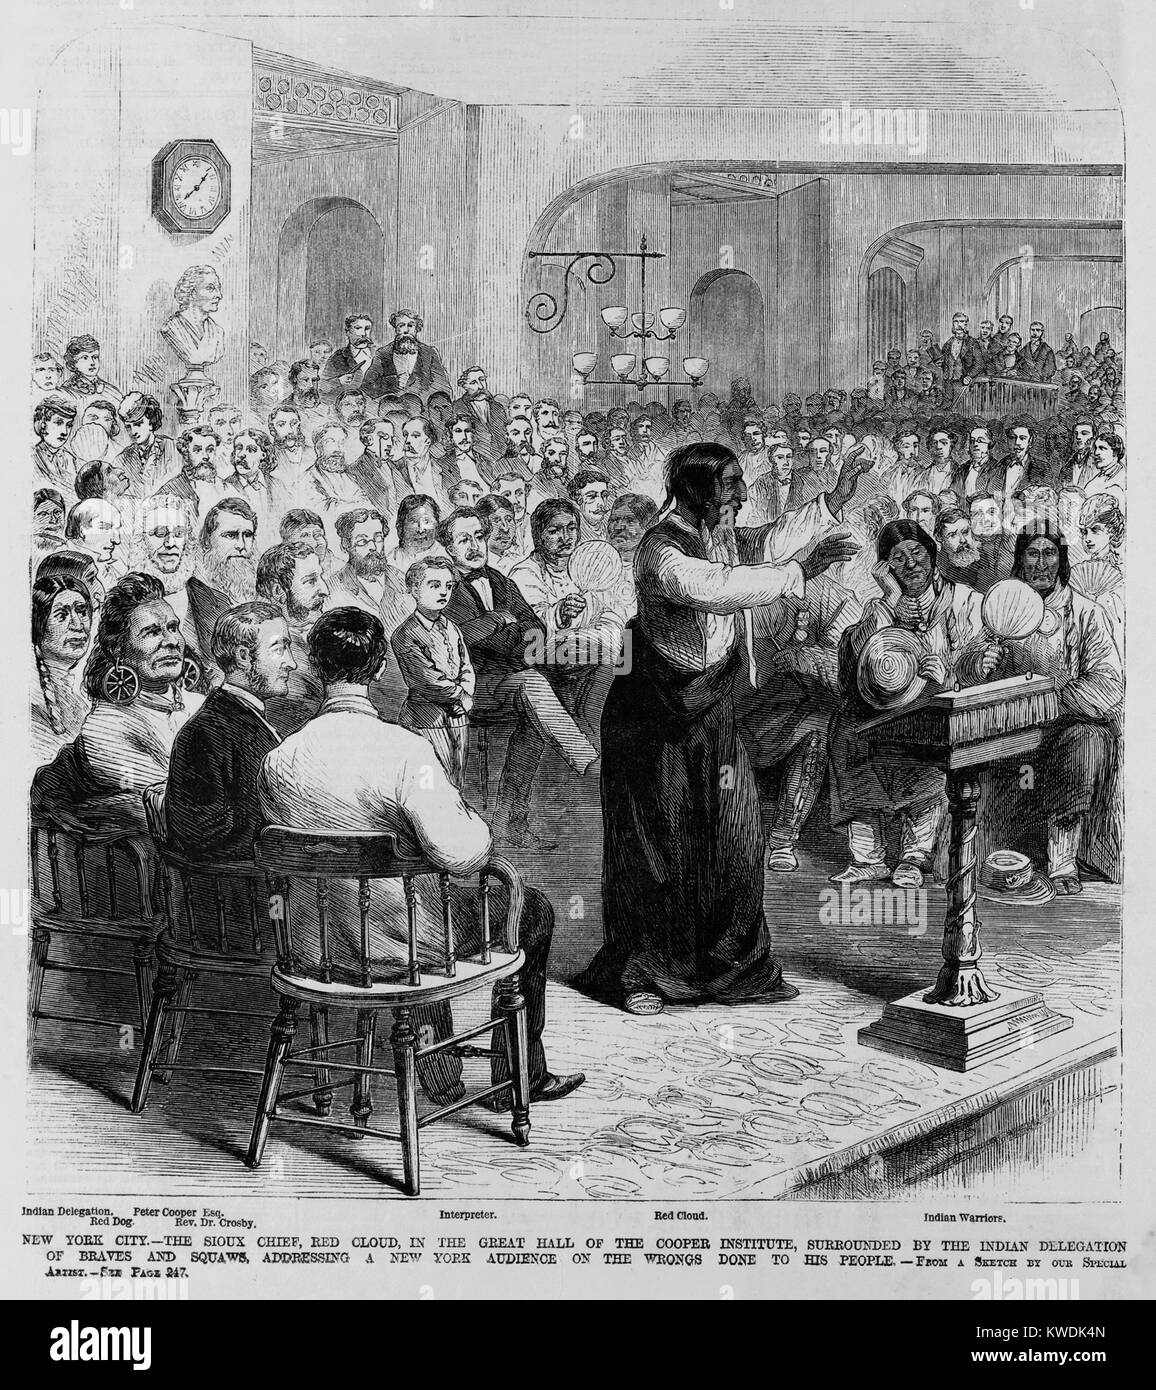 Chief Red Cloud, Oglala division of Lakota, Sioux, speaking at Cooper Union, NYC, in 1870. Surrounded by the Indian Stock Photo